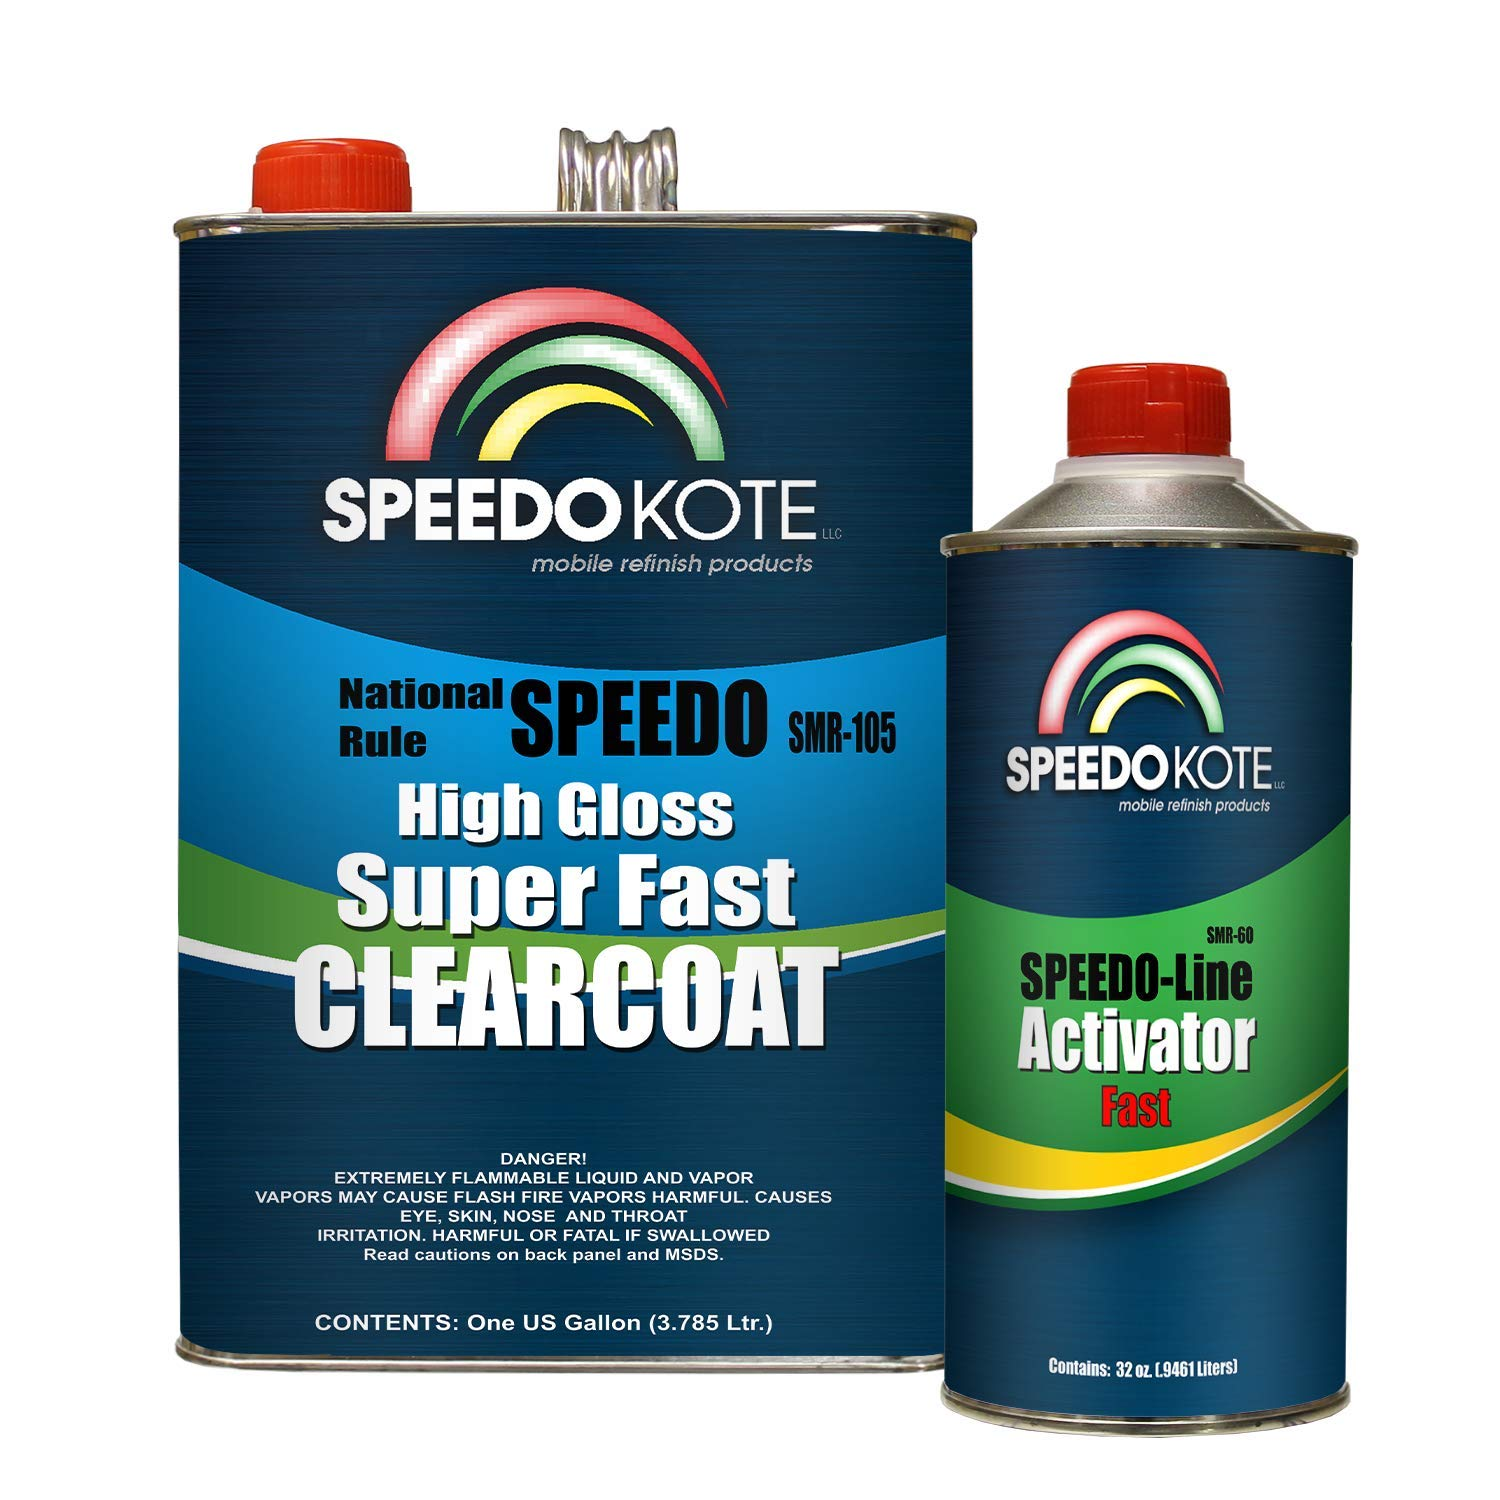 Speedokote Mobile Refinish Clear Coat High Gloss Super Fast Clearcoat Gallon Kit SMR-105/60